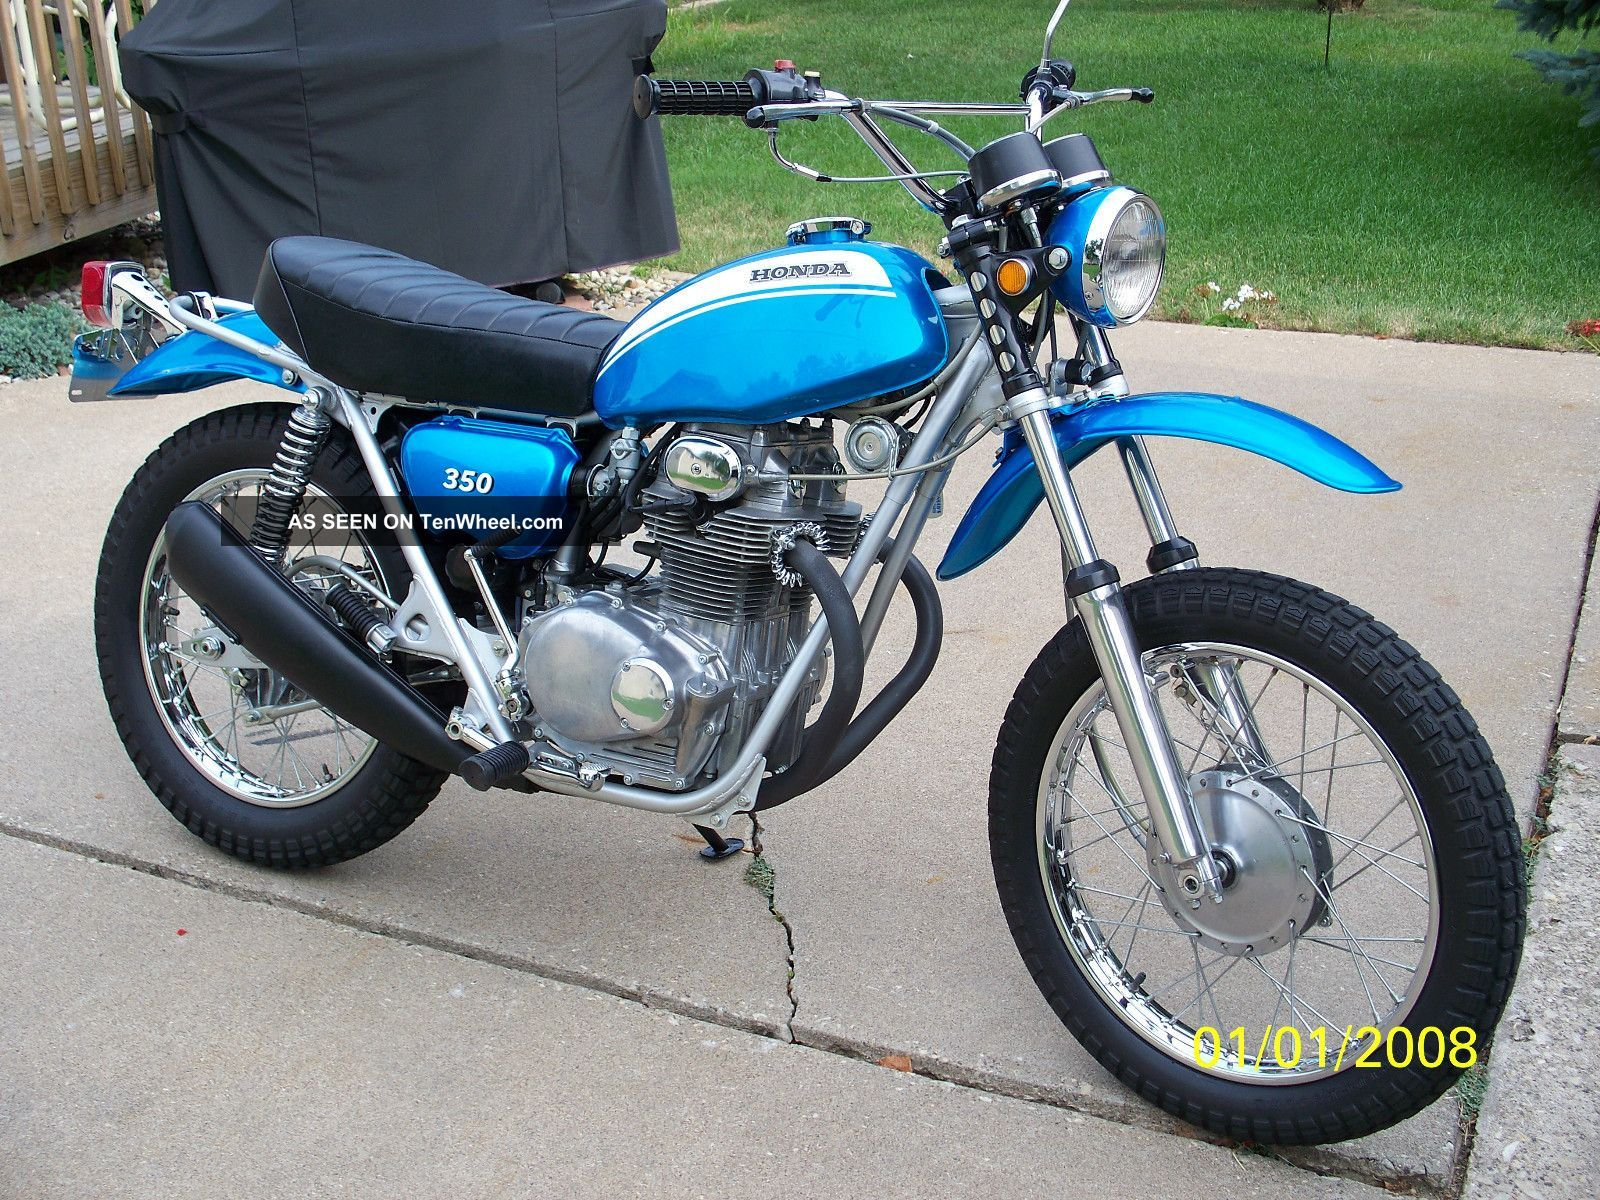 1971 honda sl 350 i went to salt lake city to buy a triumph